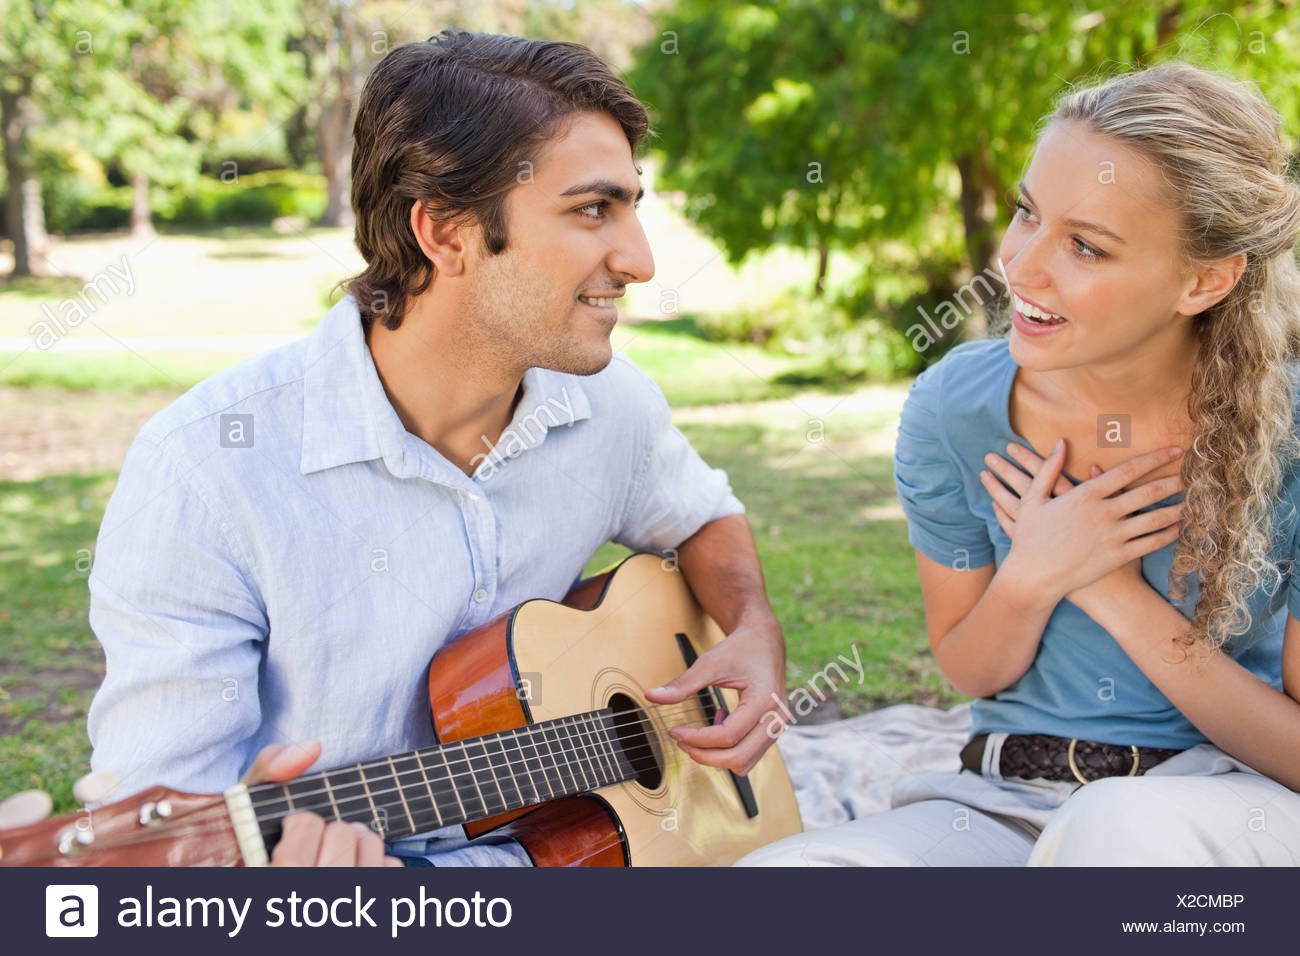 Male playing the guitar to impress his girlfriend - Stock Image